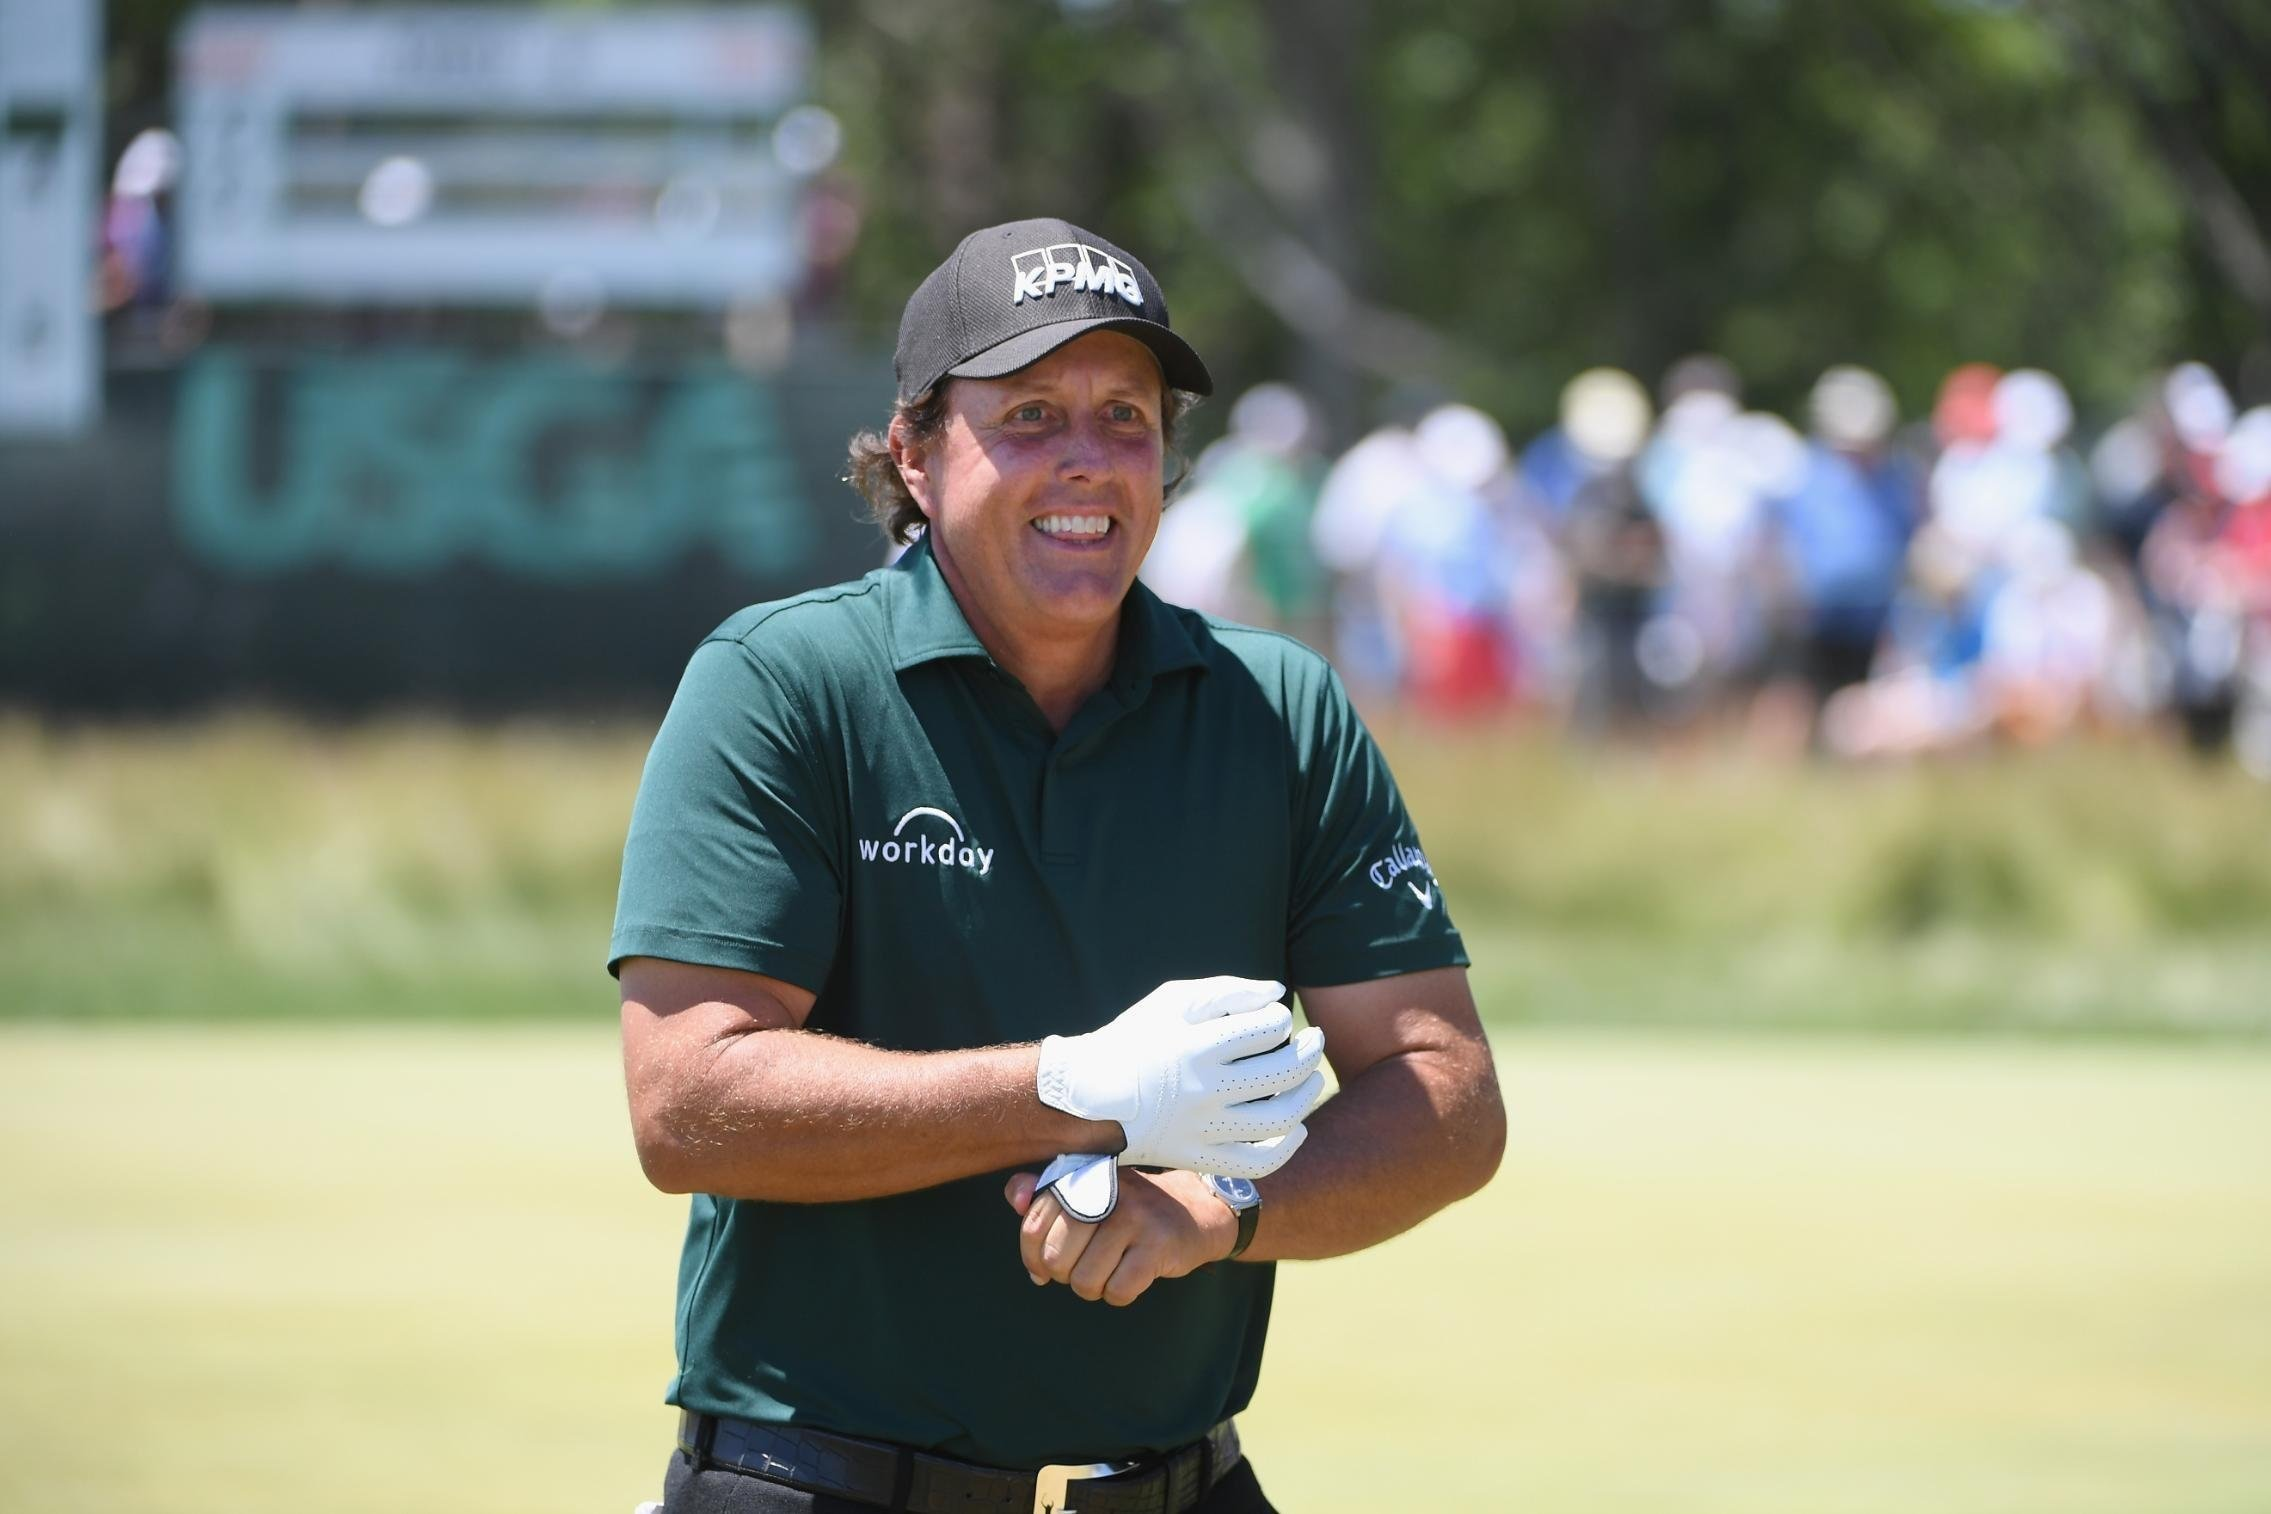 Phil Mickelson shockingly chases, swats moving ball with putter